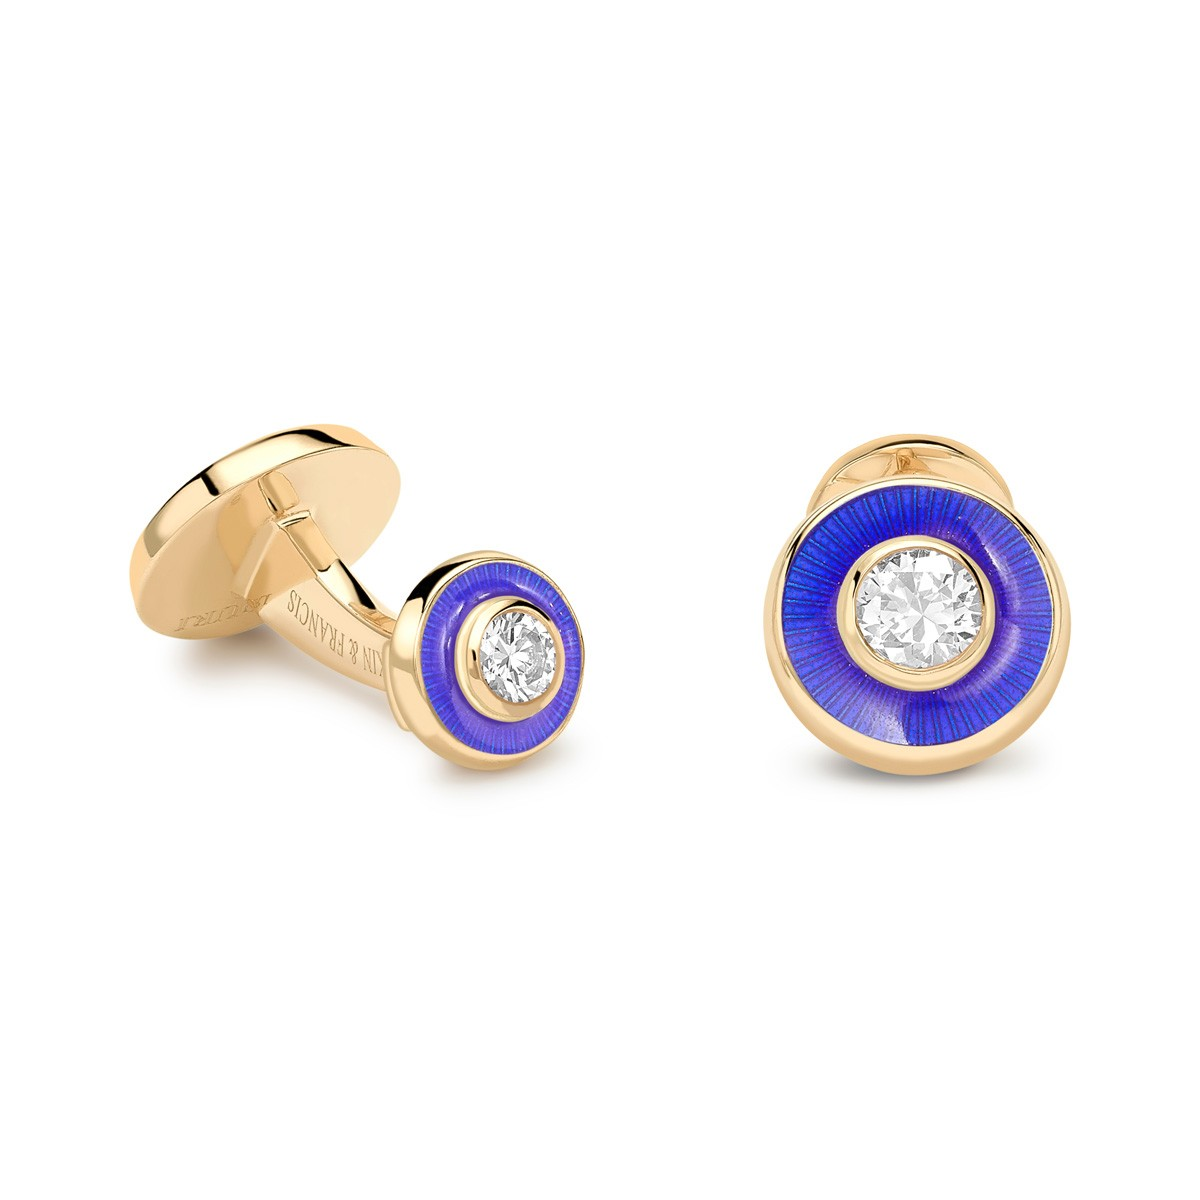 Deakin and Francis - Enamel Push Through Cufflinks